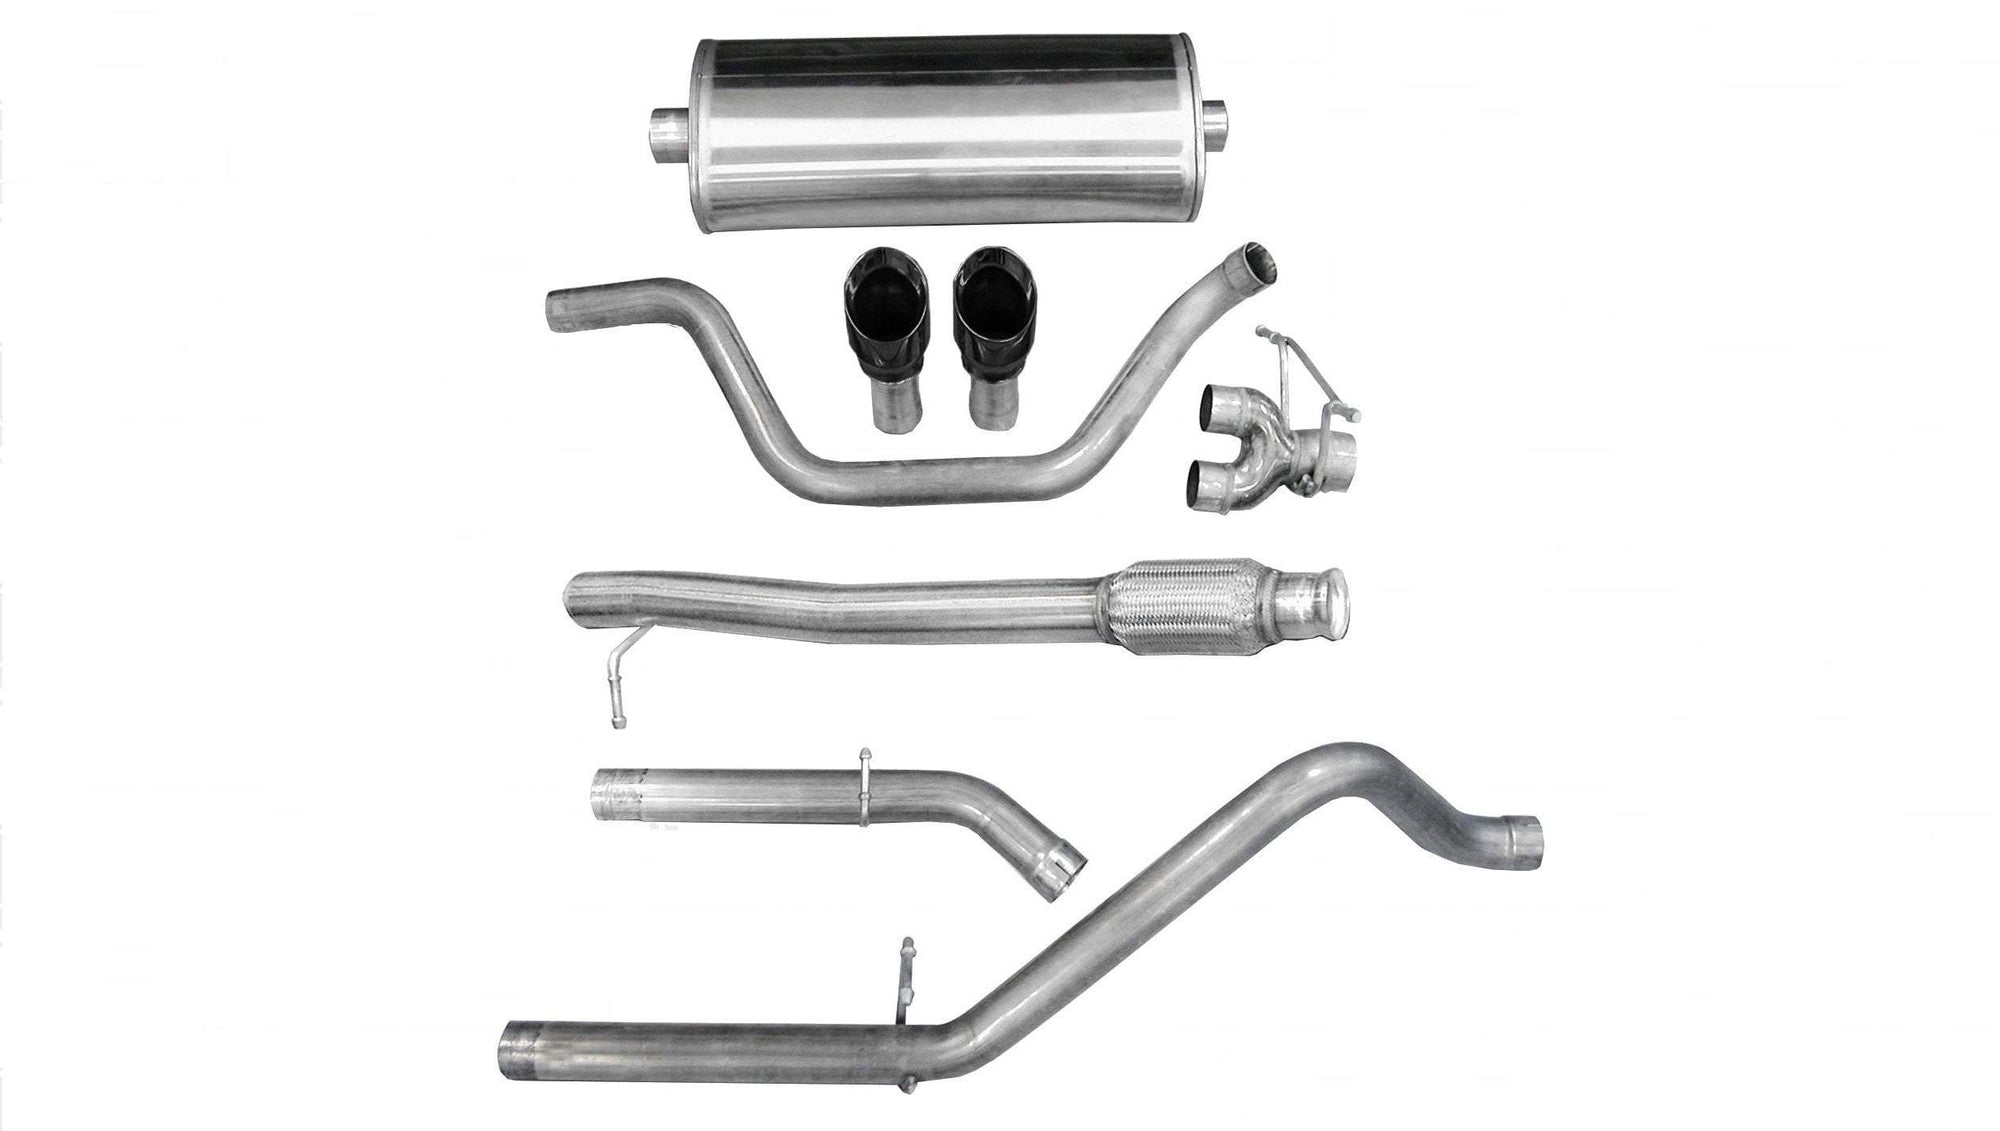 "CORSA PERFORMANCE Cat-Back Exhaust Black / Sport / Dual Rear - Single 4in 2010-2013 Chevrolet Silverado, GMC Sierra, 4.8L, 5.3L, 6.0L V8 3.0"" Dual Rear Exit Catback Exhaust System with 4.0"" Tips (14927) Sport Sound Level"